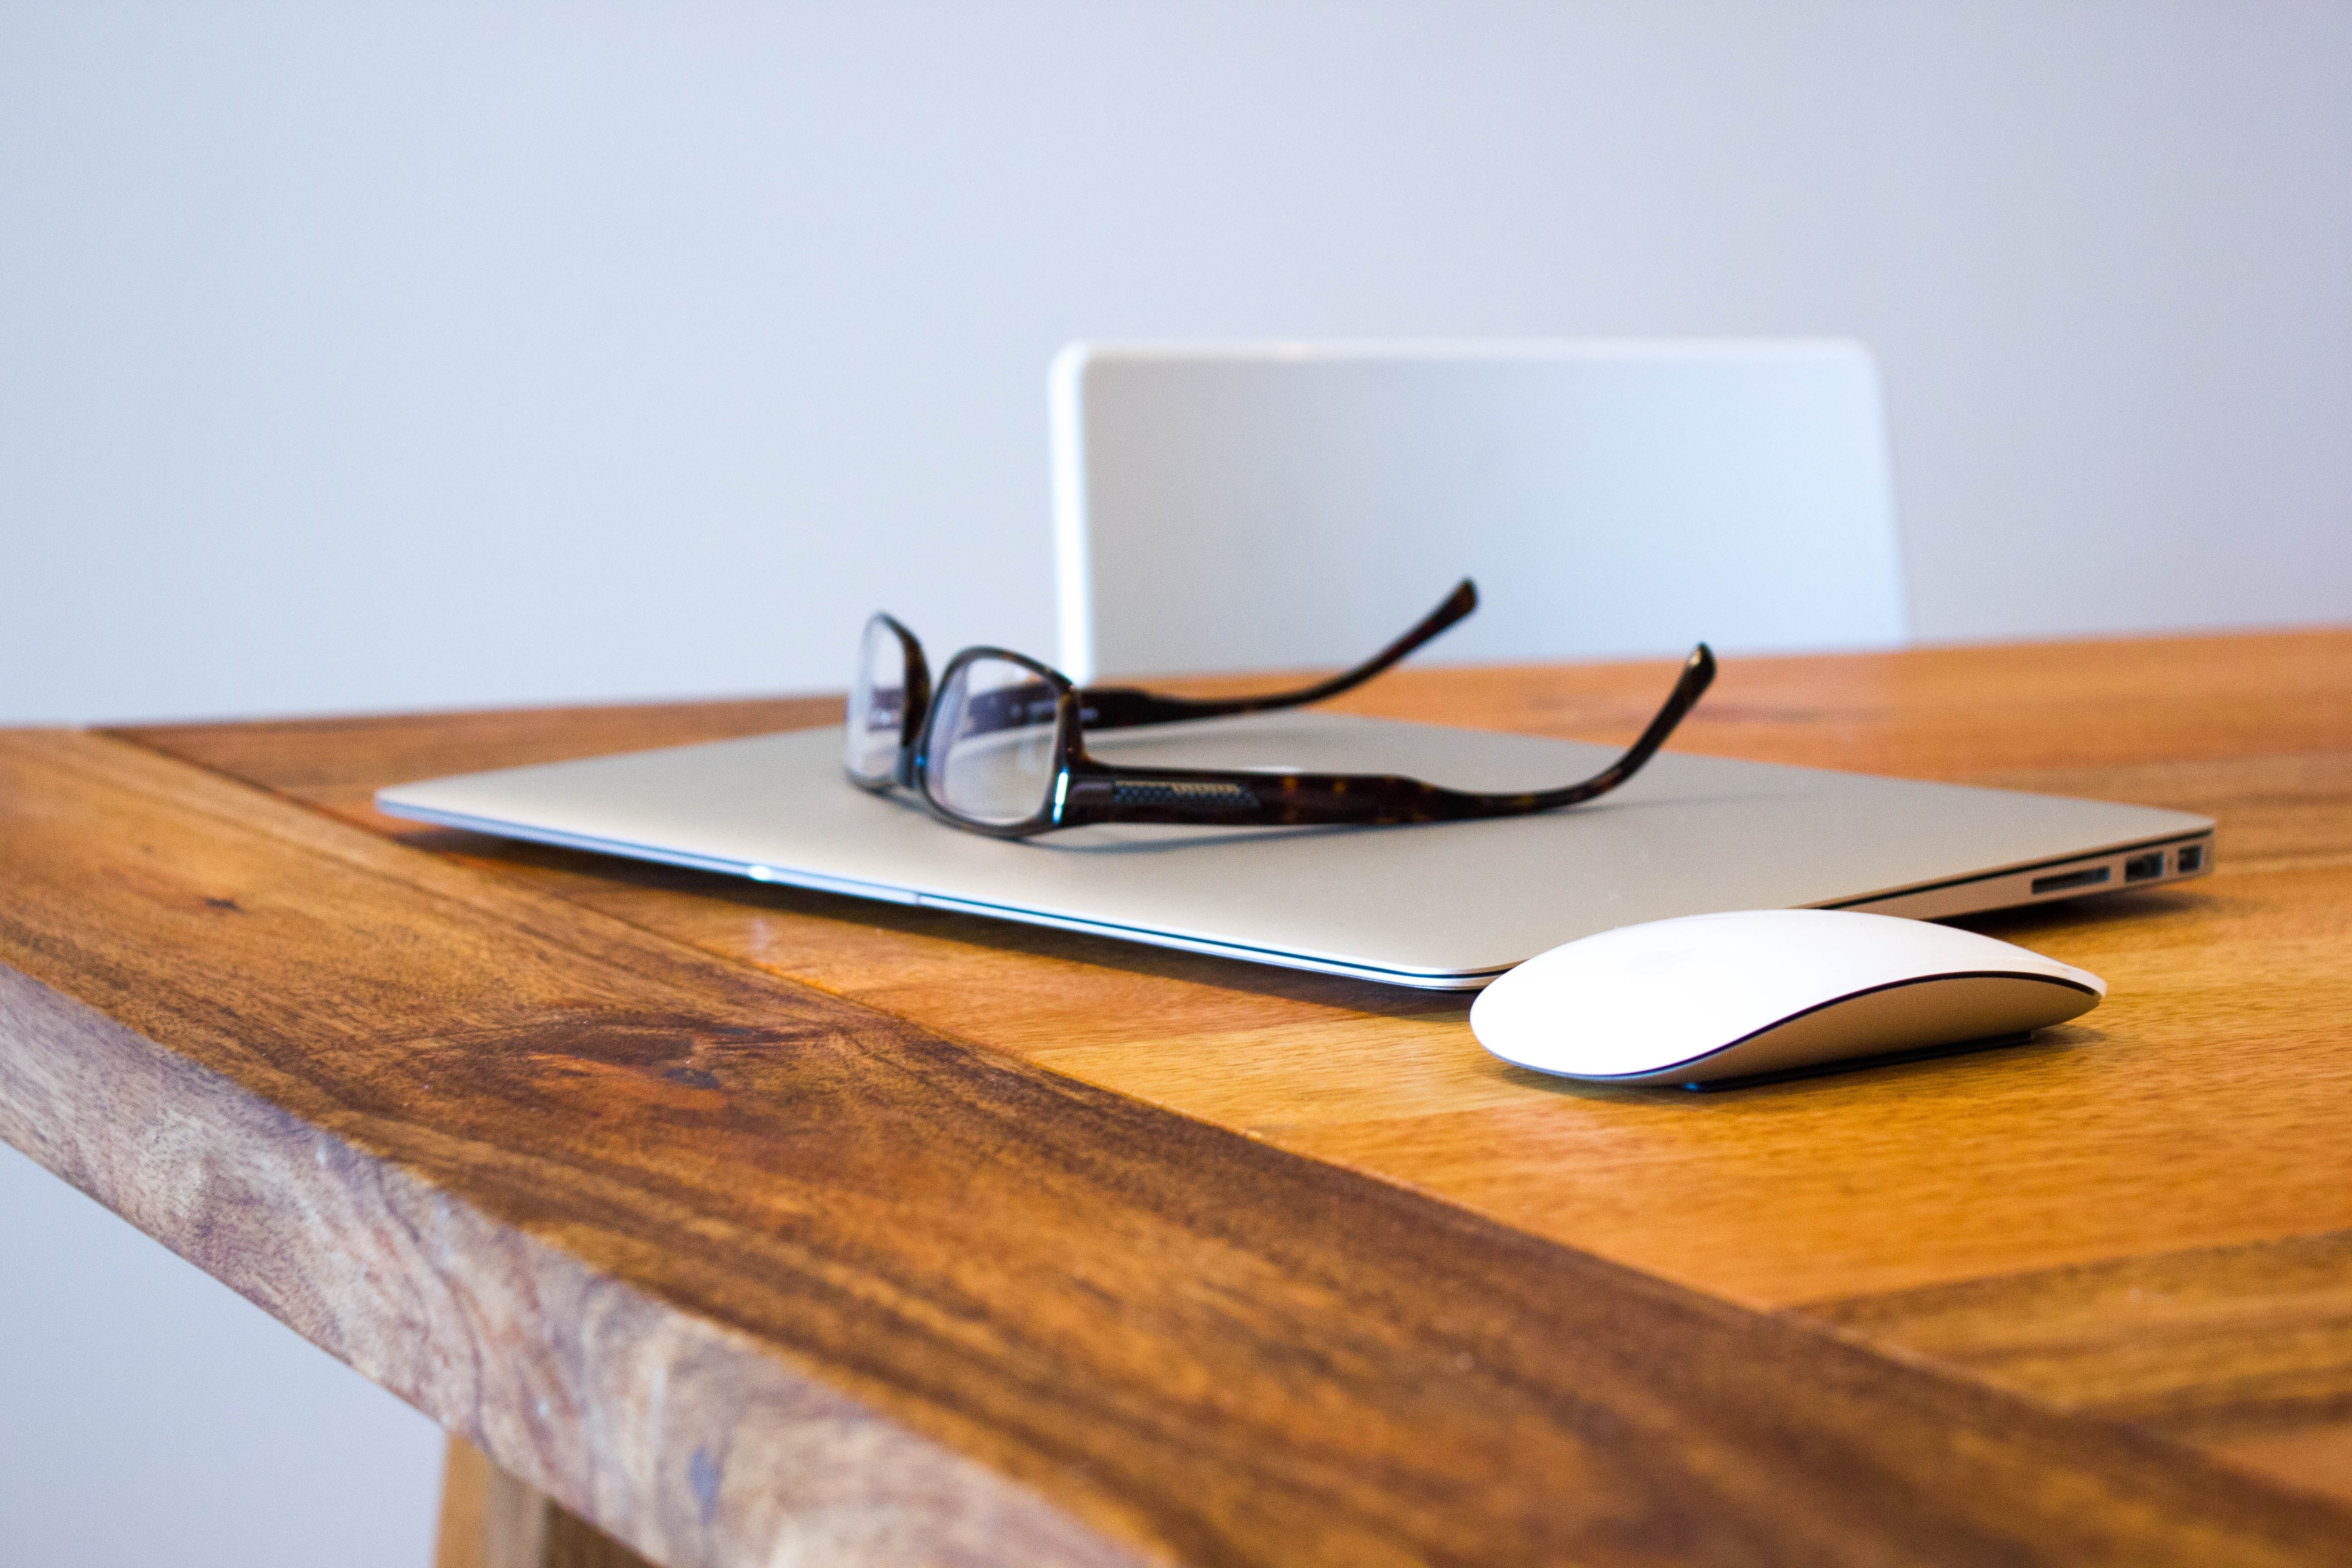 A pair of glasses on top of a laptop next to a mouse on a wooden surface